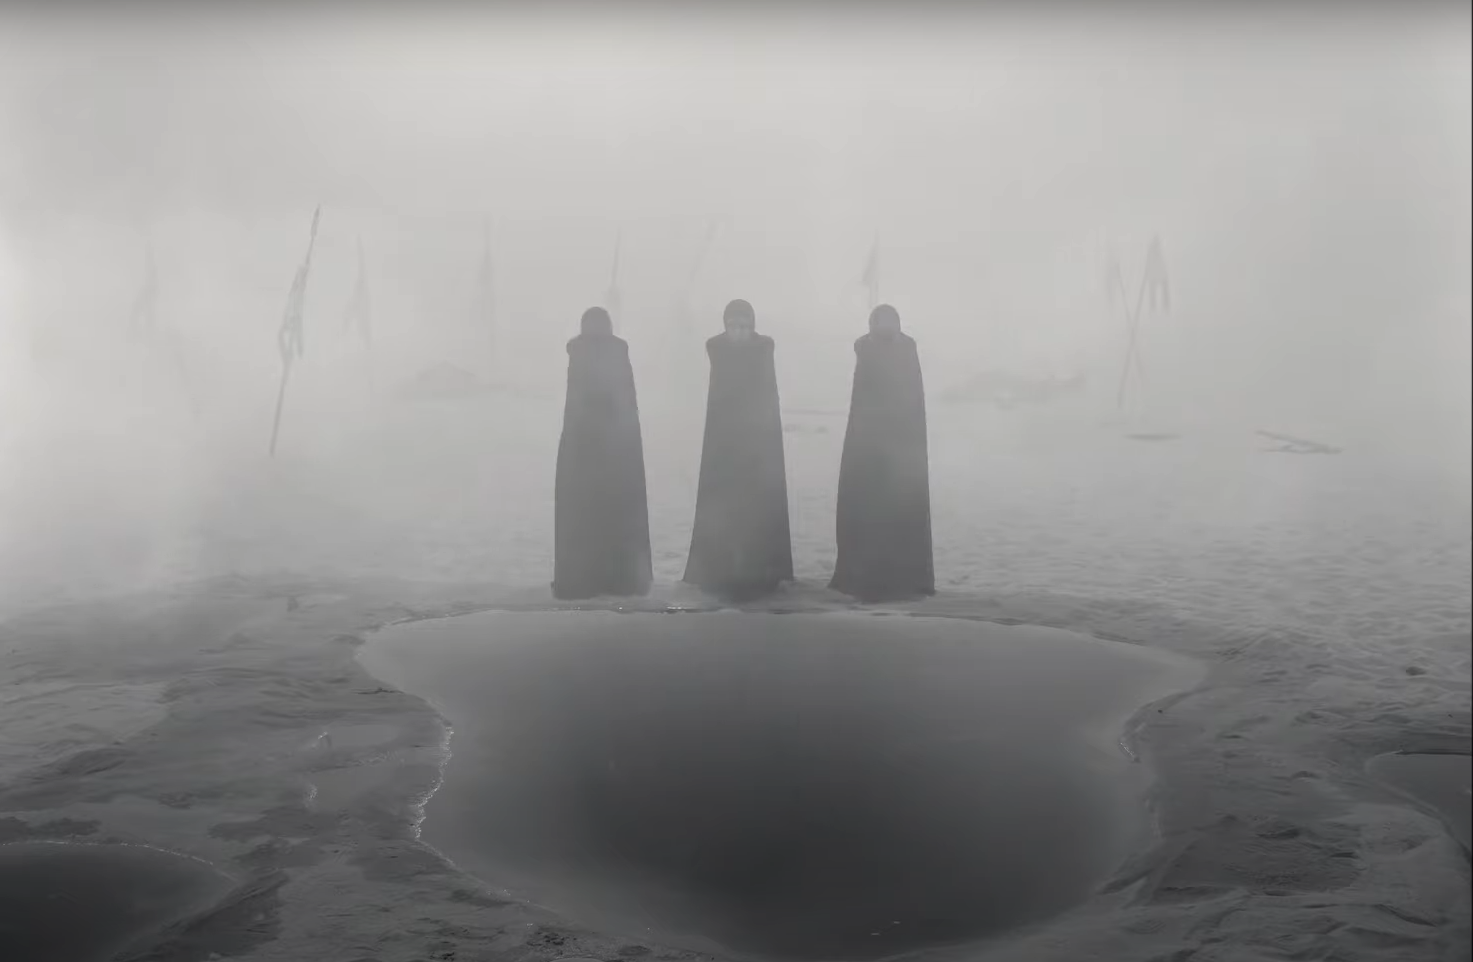 The three witches from Joel Coen's The Tragedy of Macbeth